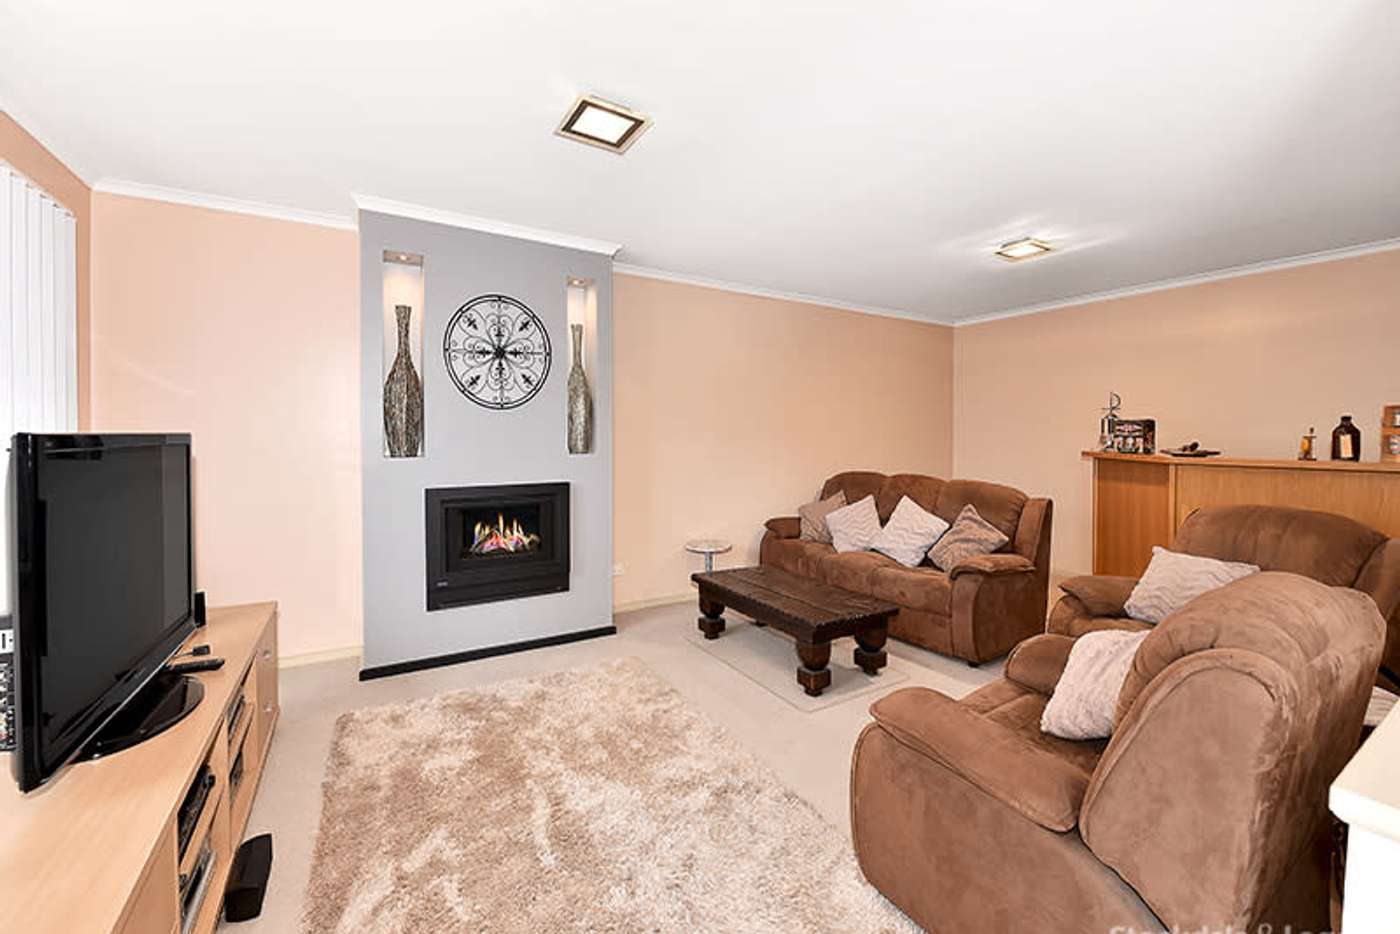 Fifth view of Homely house listing, 57 Dorchester Street, Craigieburn VIC 3064